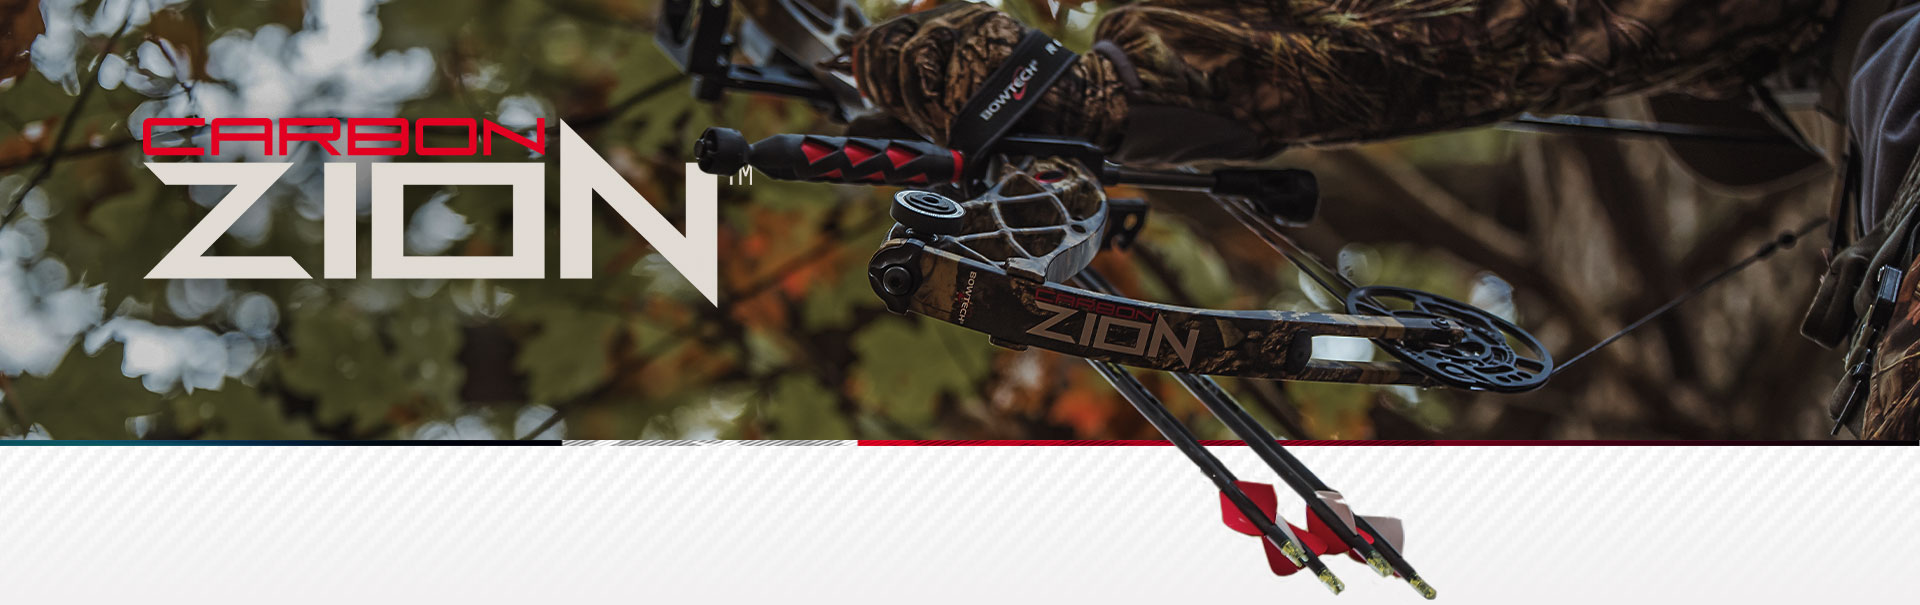 Carbon Zion archery compound bow